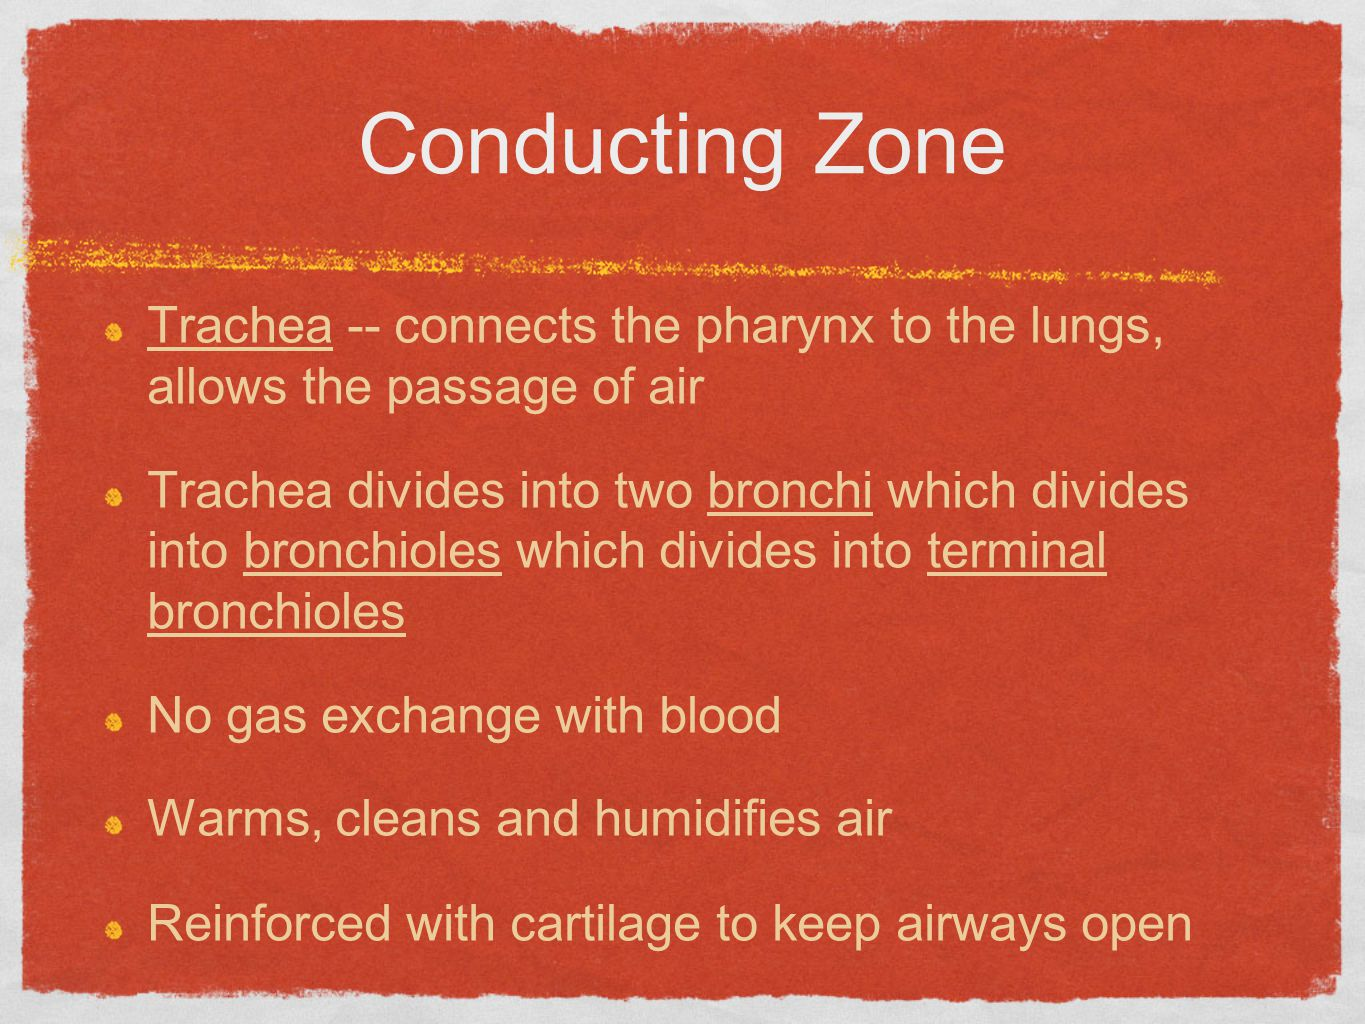 Conducting Zone Trachea -- connects the pharynx to the lungs, allows the passage of air.